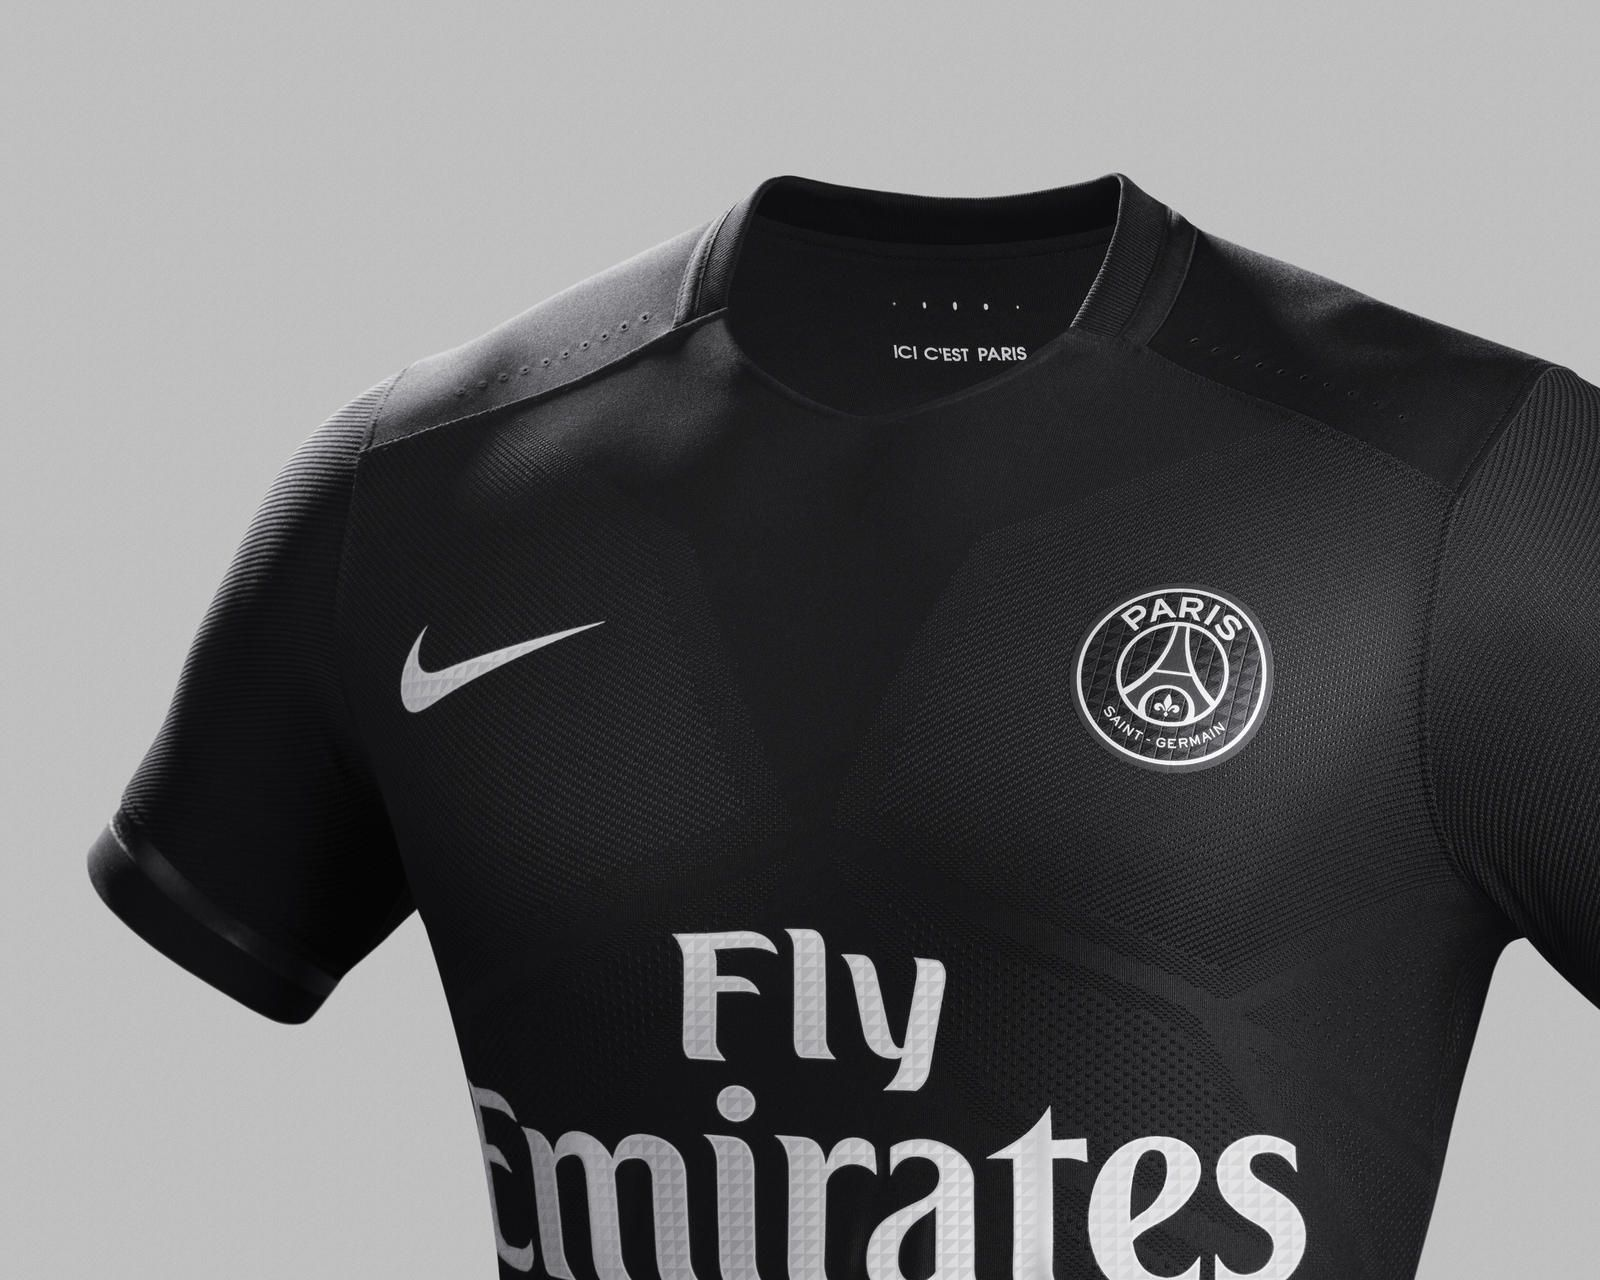 Nike News - Nike Dark Light  o poderoso uniforme preto do Paris  Saint-Germain 6d7b102cf8e31